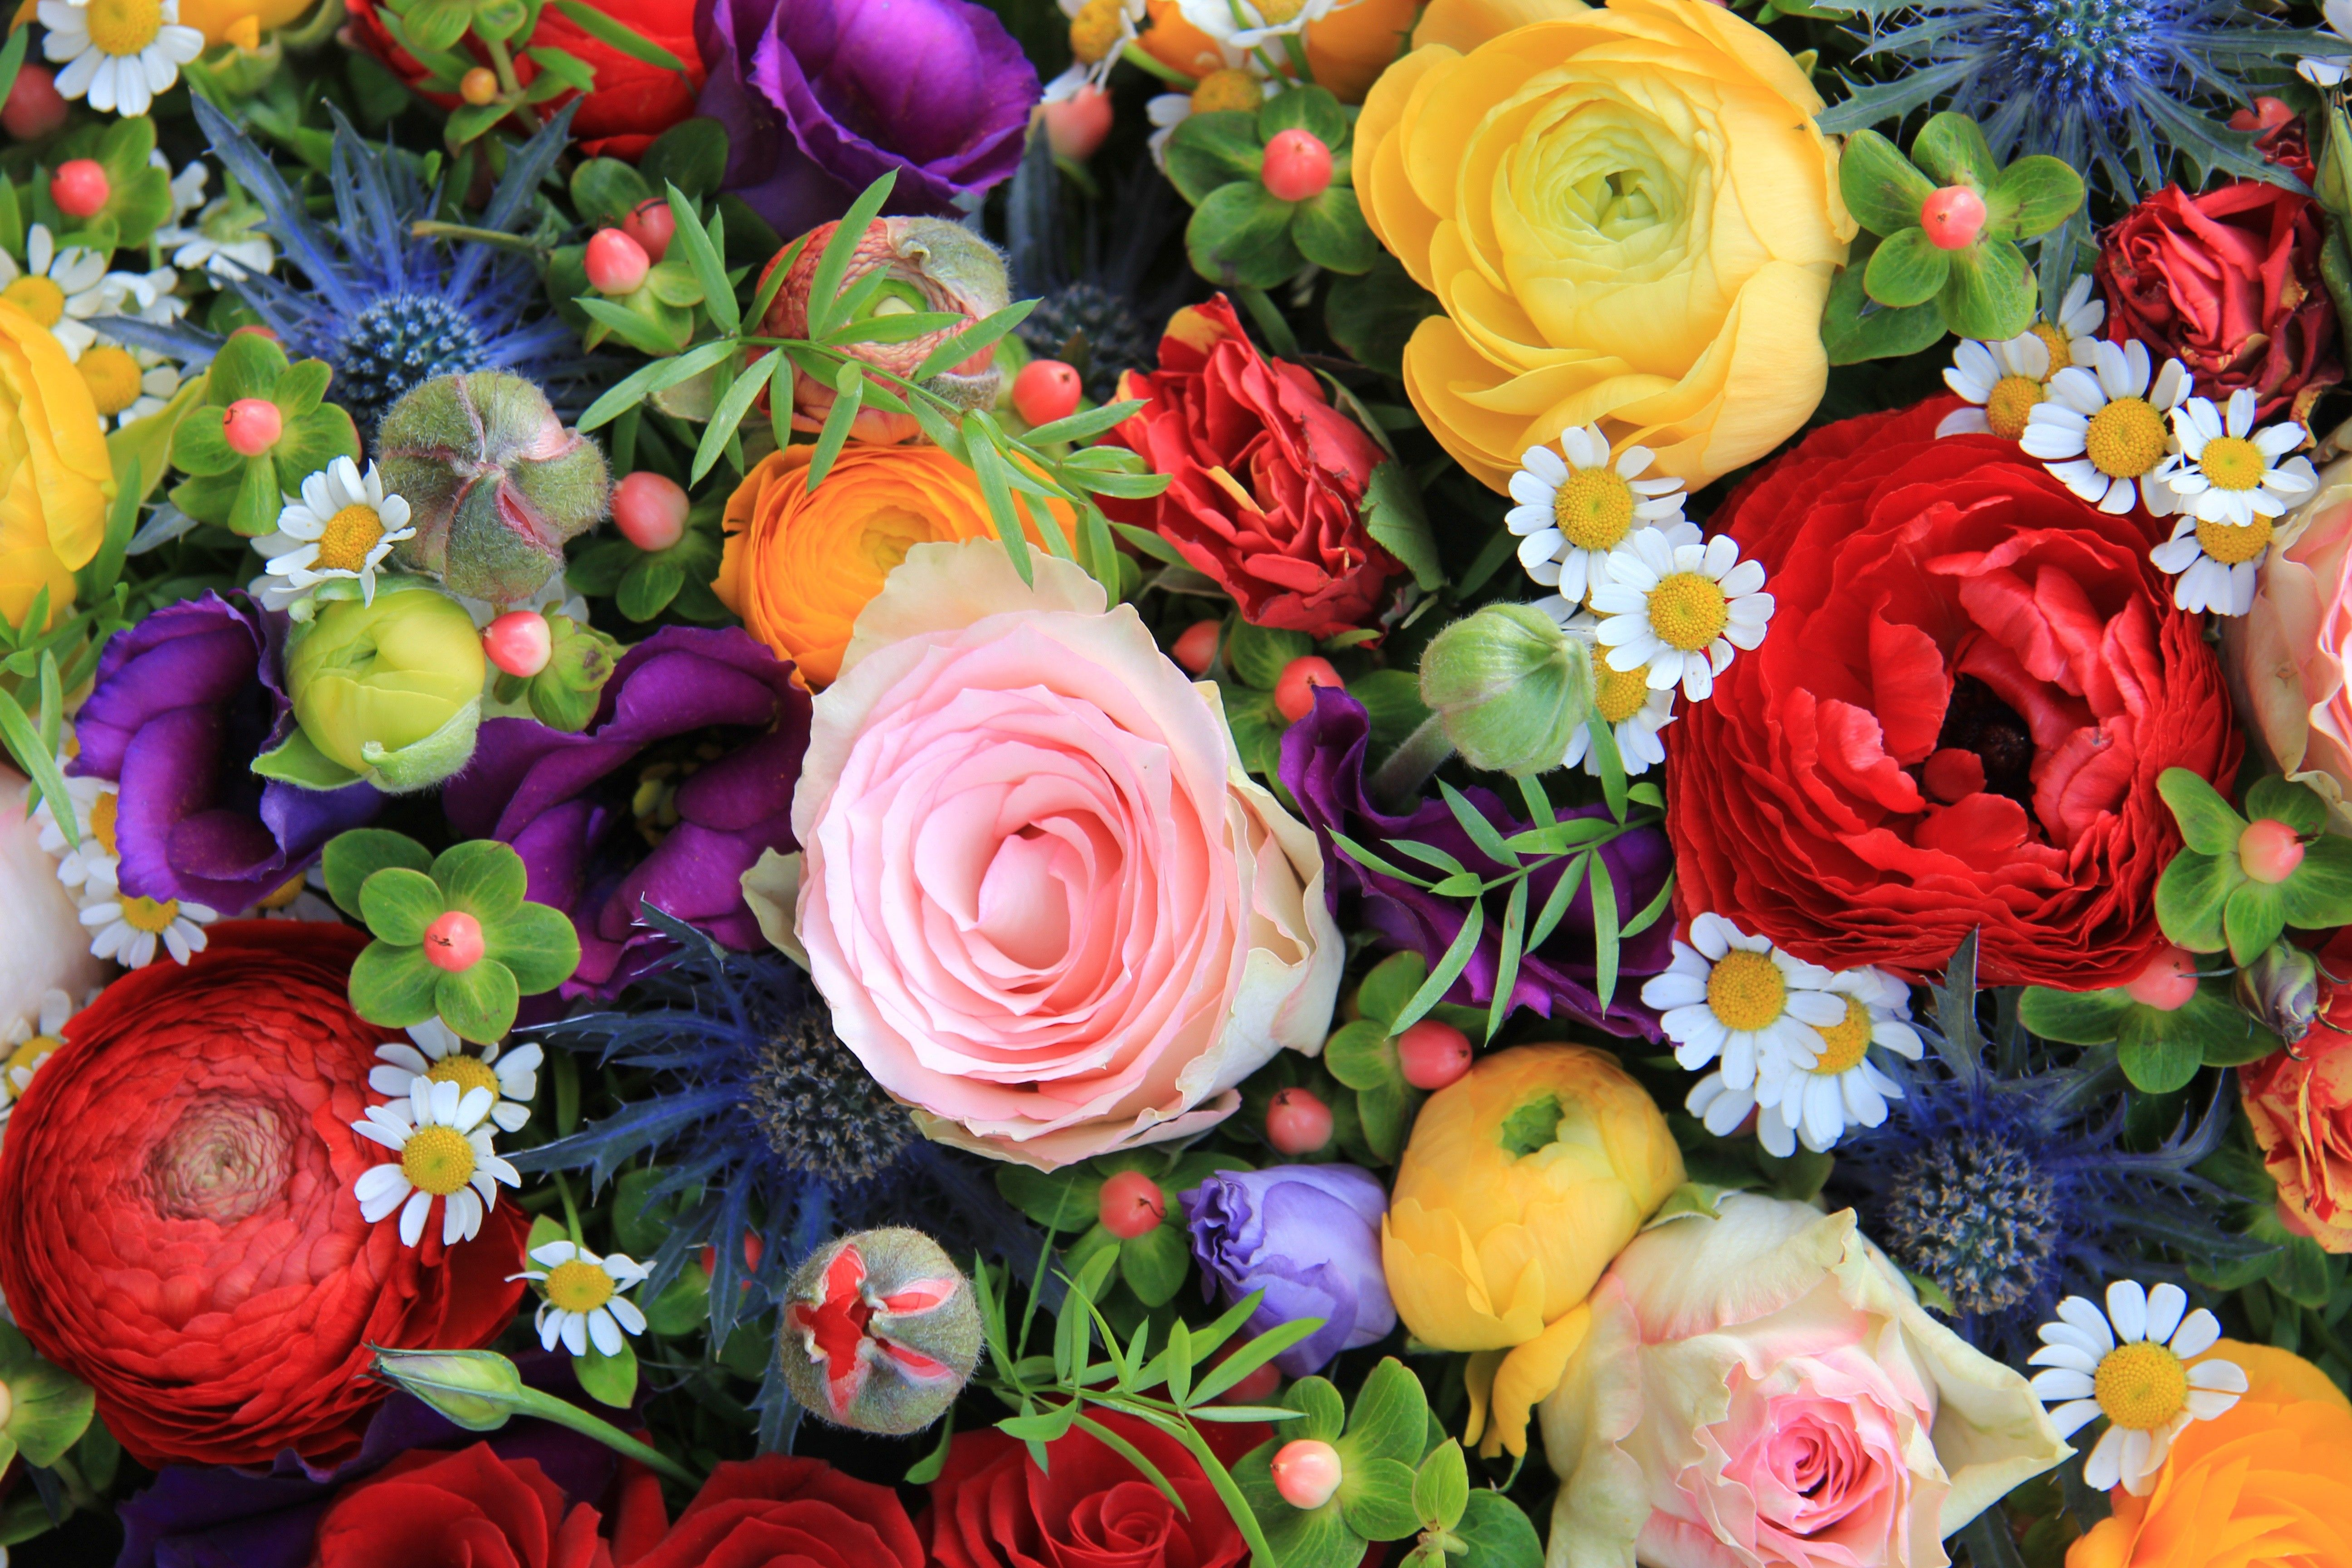 Flowers Colors Spring Colorful Flowers Time Roses Petals Nature Beautify Rose Beautiufl Love Pretty Flower Pretty Flowers Background Flowers Beautiful Flowers